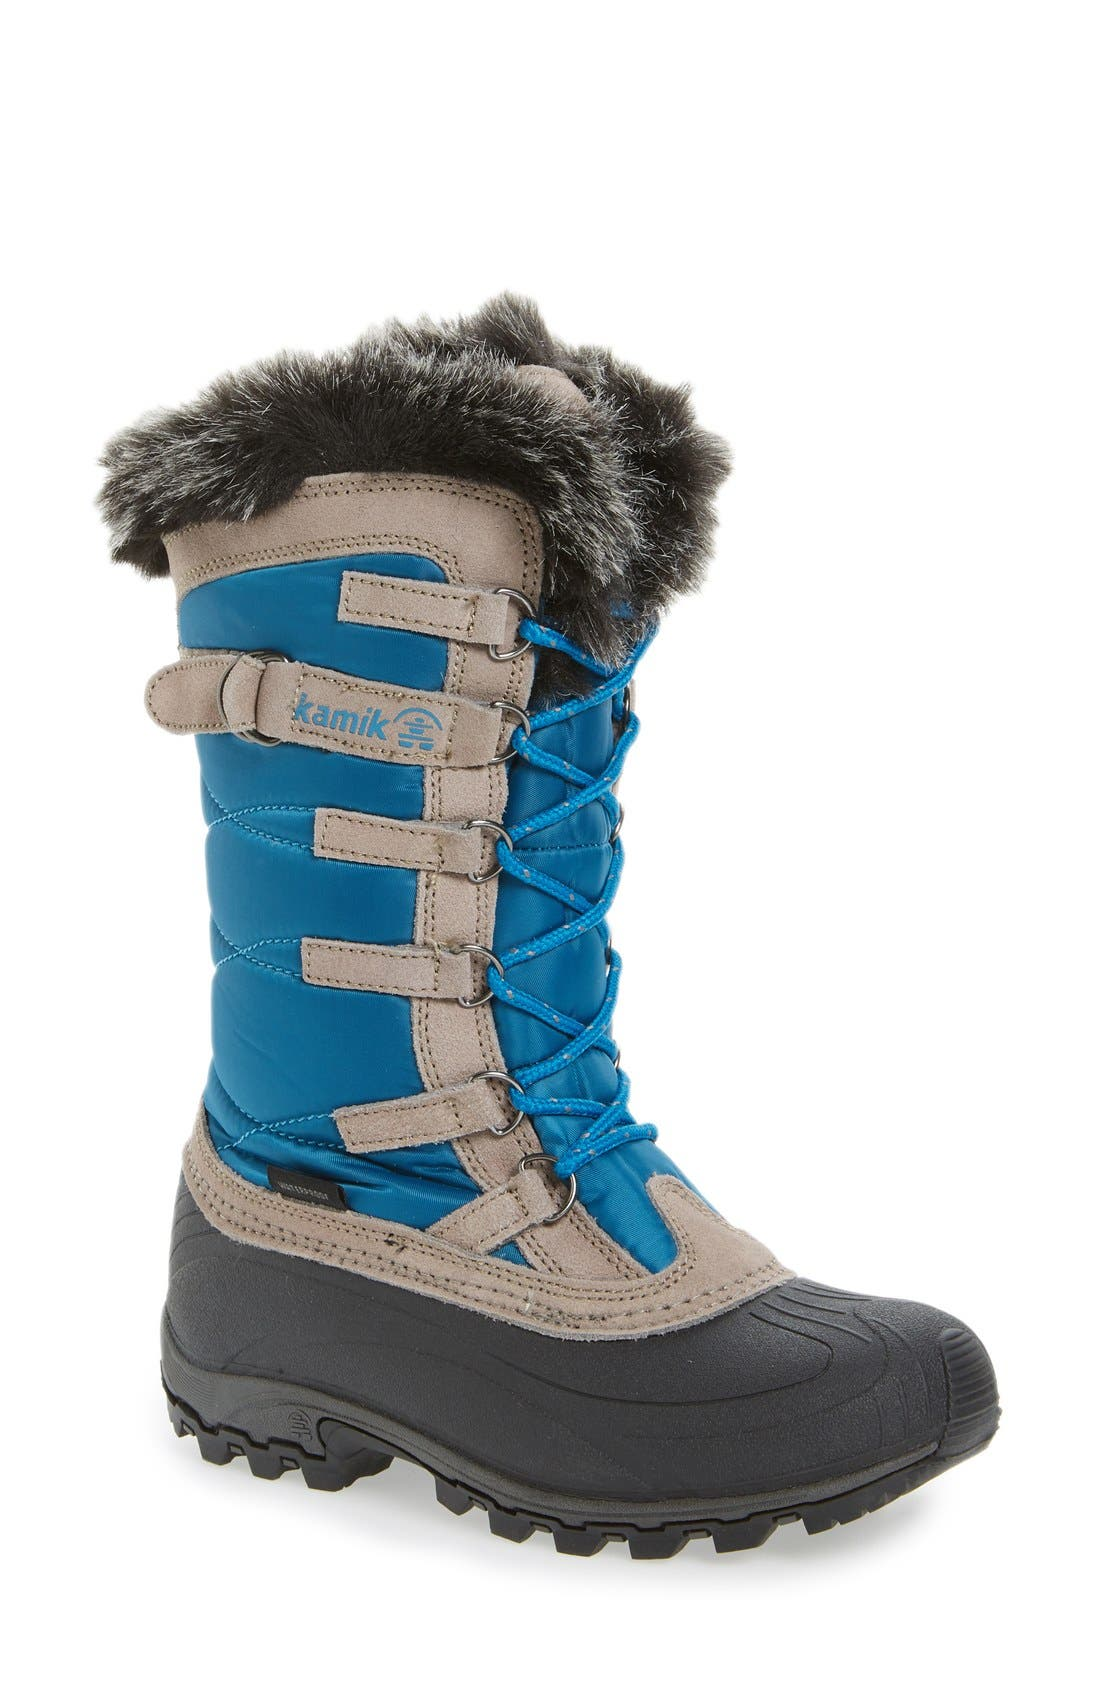 Alternate Image 1 Selected - Kamik Snowvalley Waterproof Boot with Faux Fur Cuff (Women)